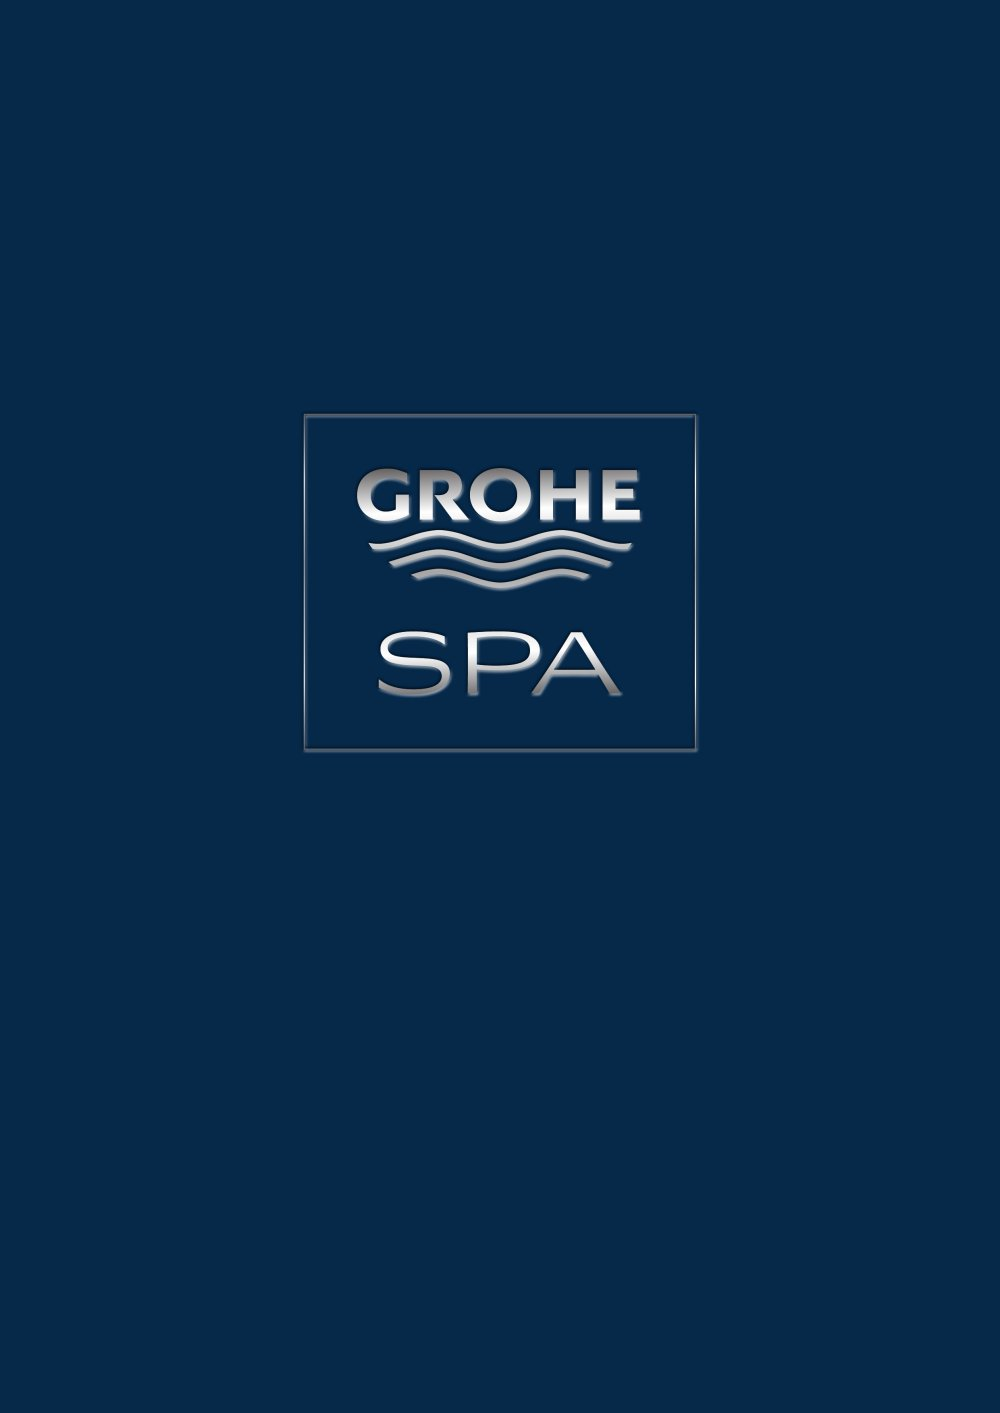 GROHE SPATM Collections - GROHE - PDF Catalogues | Documentation ...